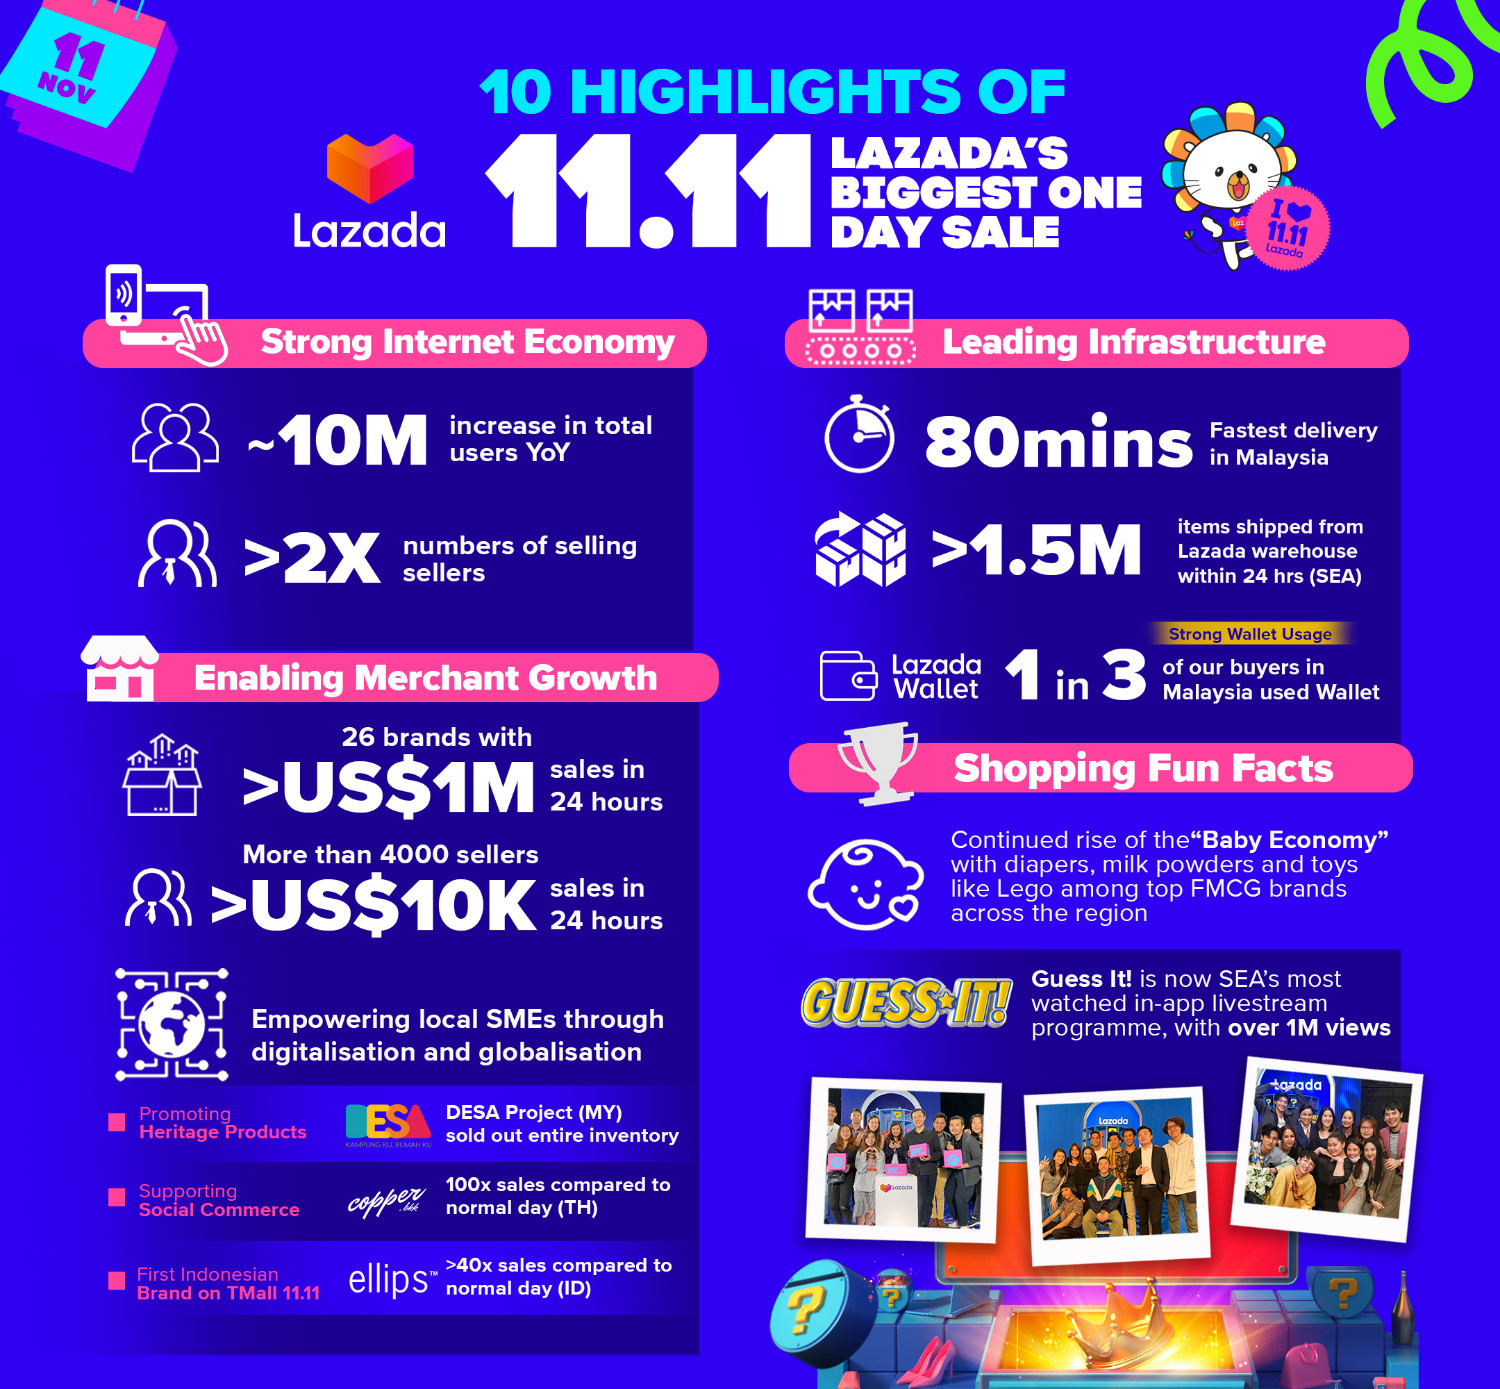 Lazada's 10 highlights of 11.11